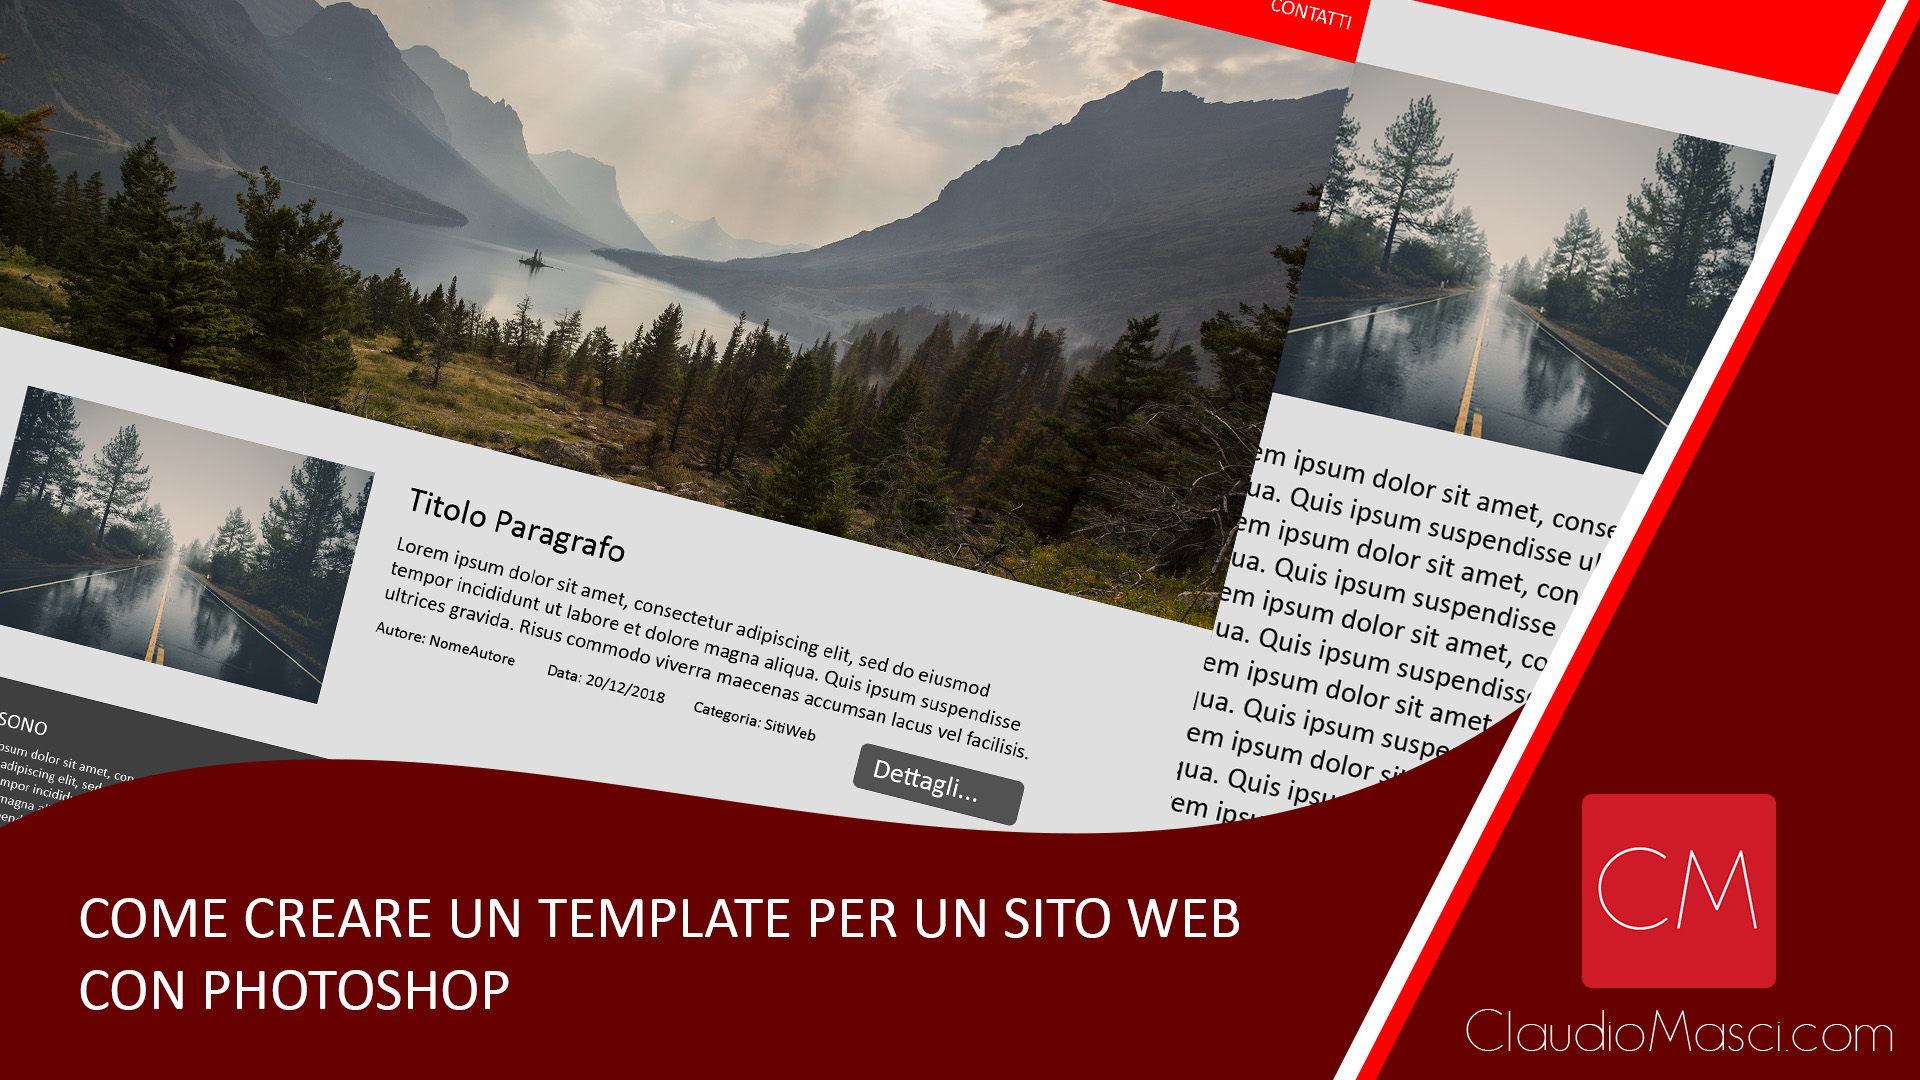 Come creare un template per un sito web con Photoshop